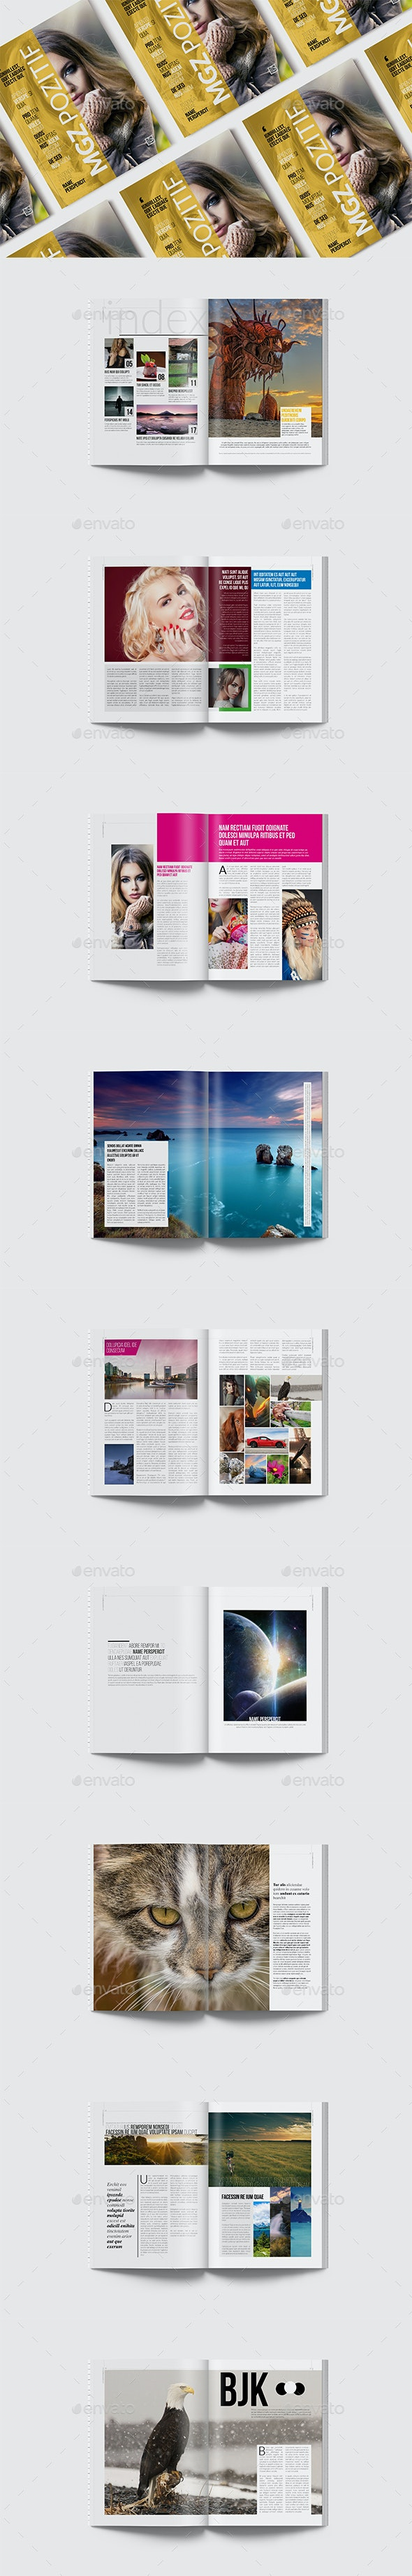 Magazine Template 20 Pages - Magazines Print Templates